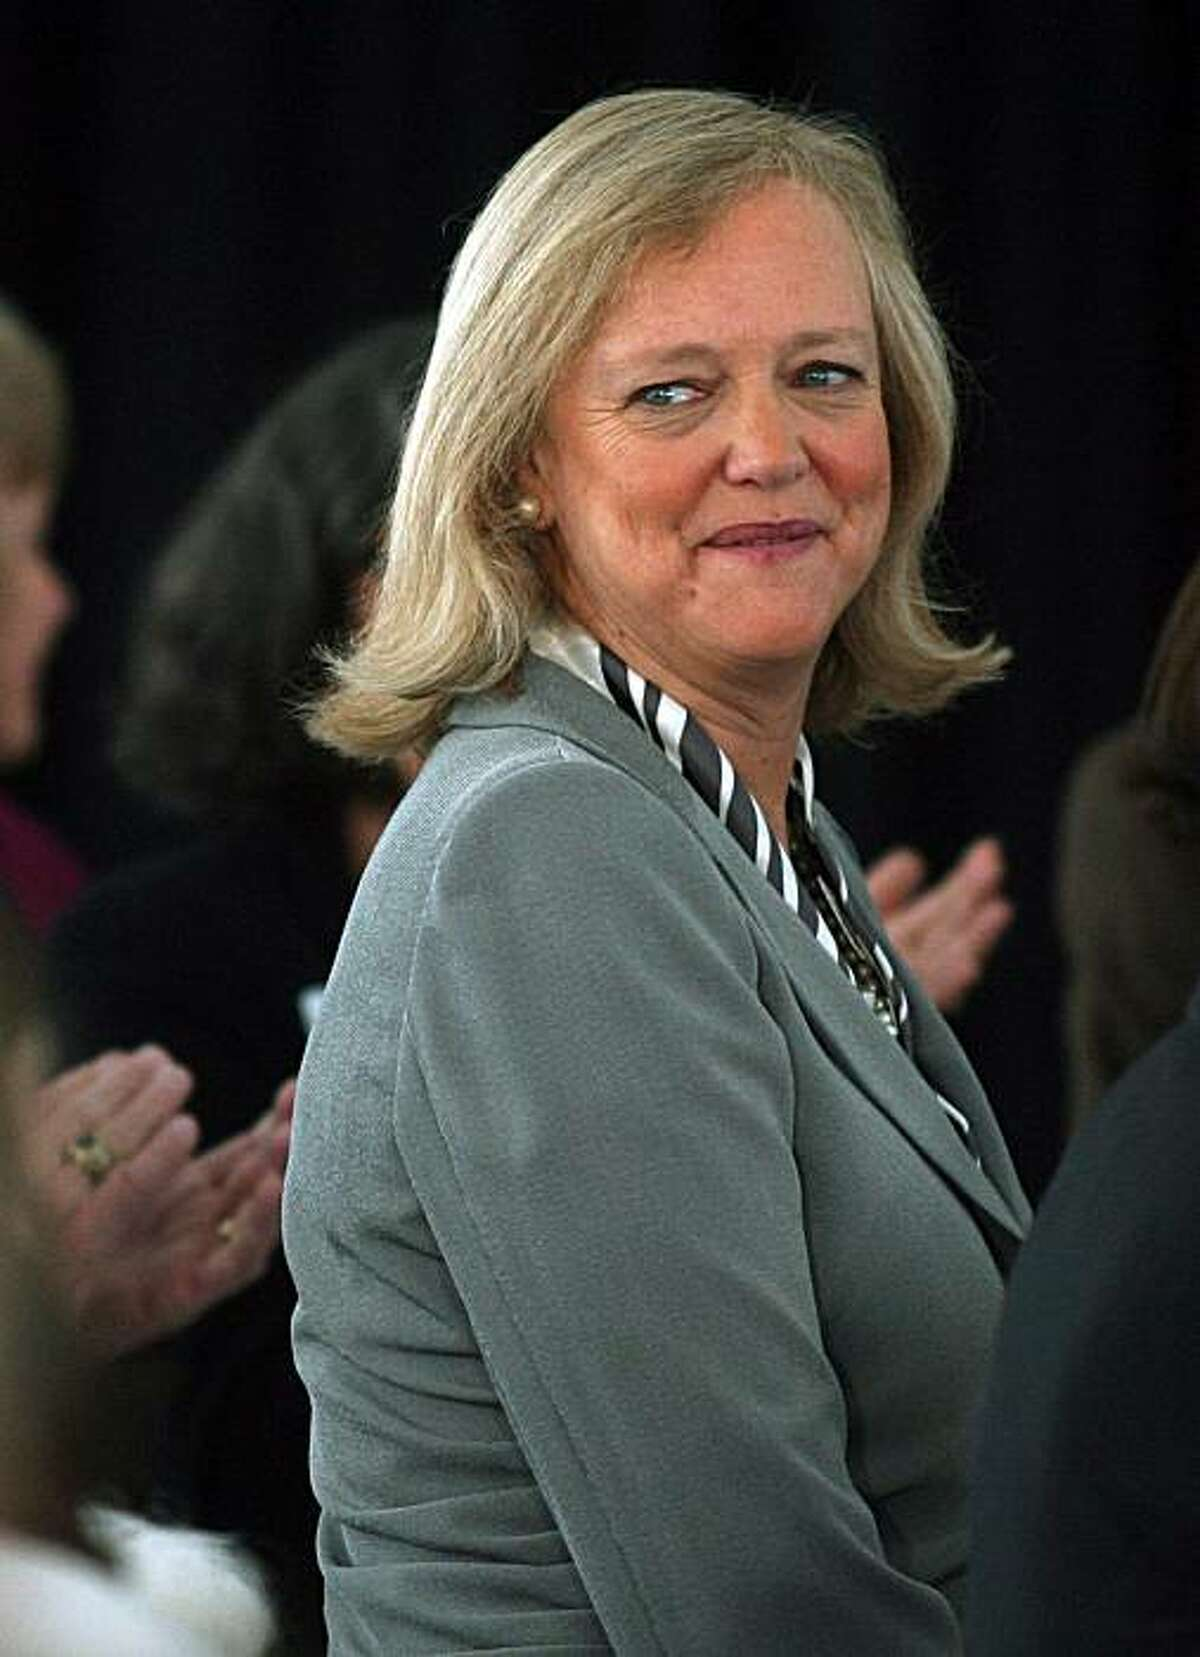 California Republican gubernatorial candidate Meg Whitman arrives at a fund-raising luncheon, Friday, Sept. 24, 2010 in Fresno, Calif.